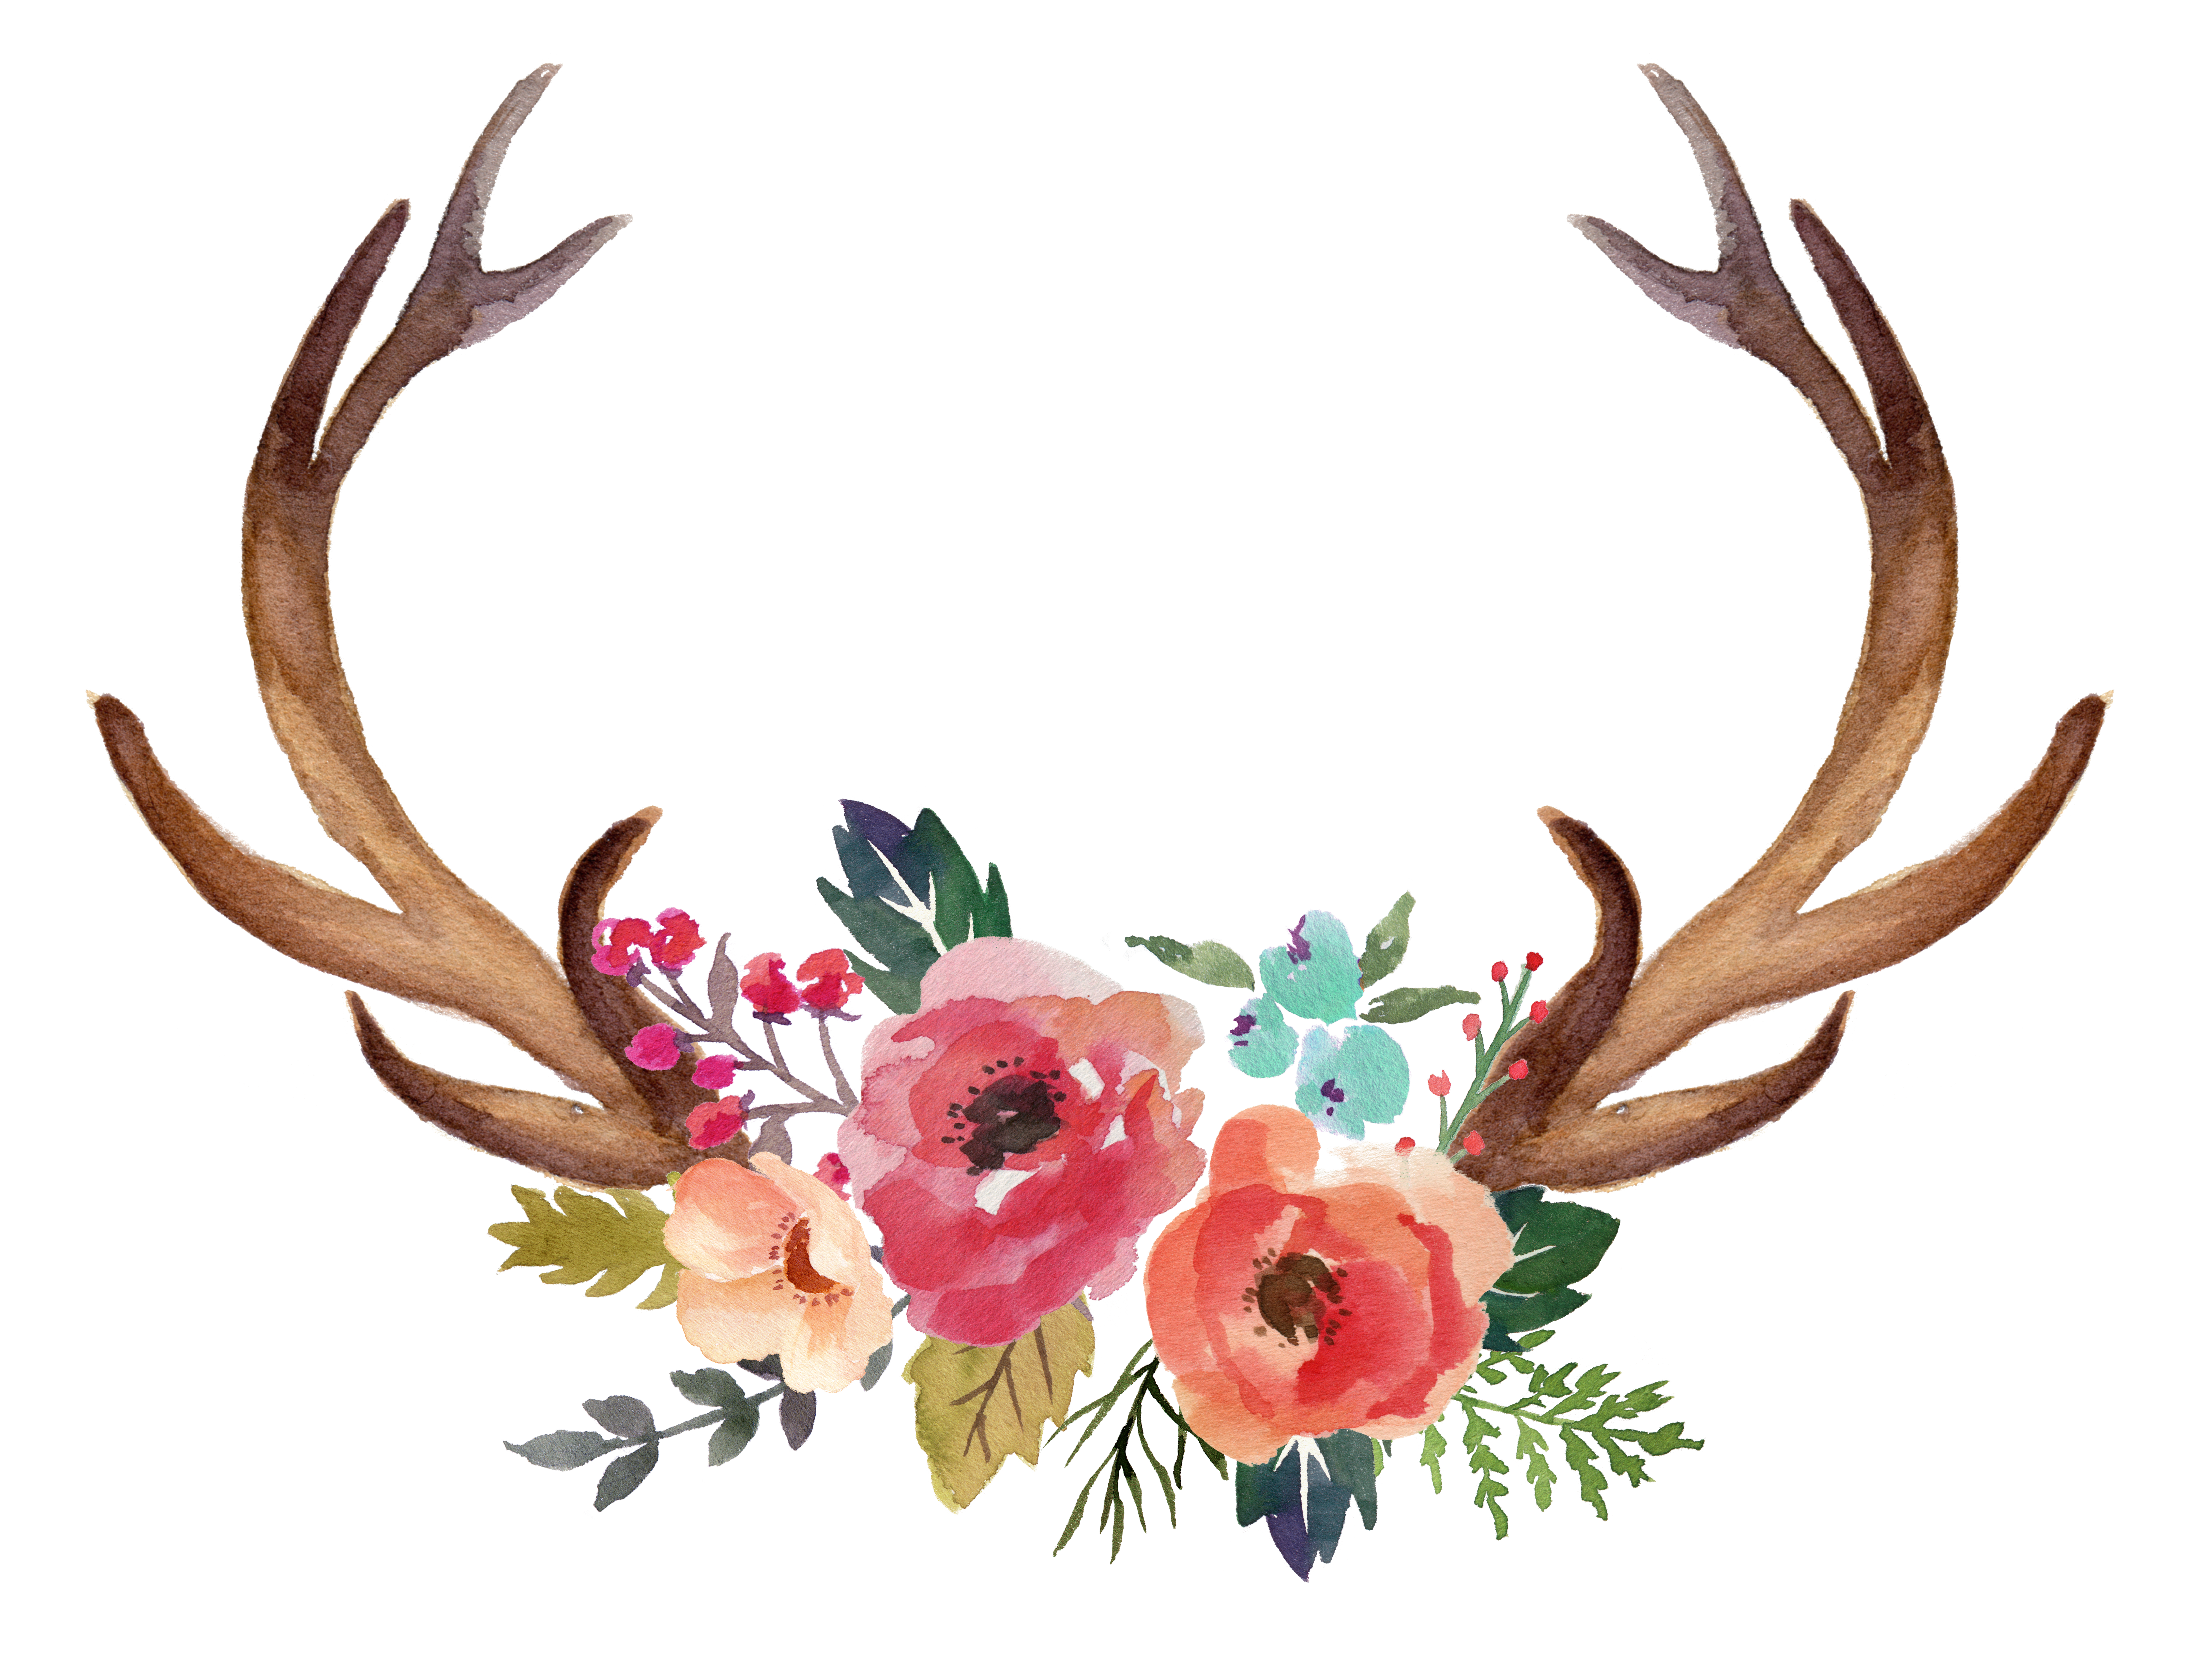 8993x6807 Deer Antler Moose Flower Clip Art